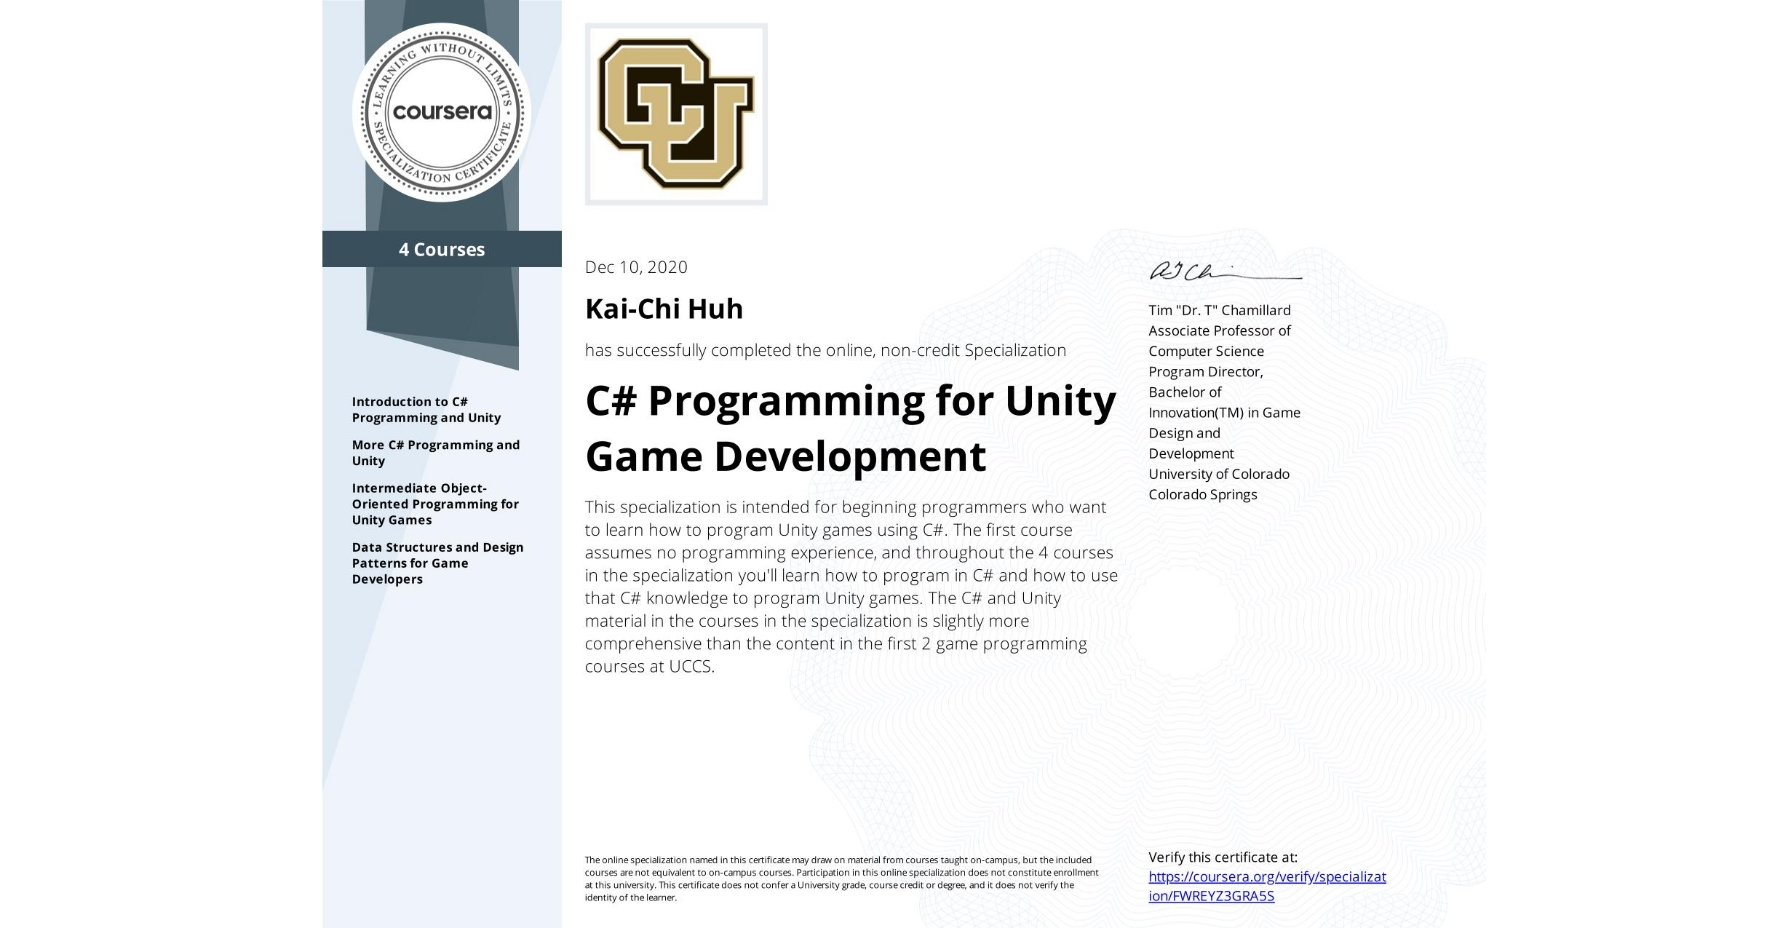 View certificate for Kai-Chi Huh, C# Programming for Unity Game Development, offered through Coursera. This specialization is intended for beginning programmers who want to learn how to program Unity games using C#. The first course assumes no programming experience, and throughout the 4 courses in the specialization you'll learn how to program in C# and how to use that C# knowledge to program Unity games. The C# and Unity material in the courses in the specialization is slightly more comprehensive than the content in the first 2 game programming courses at UCCS.